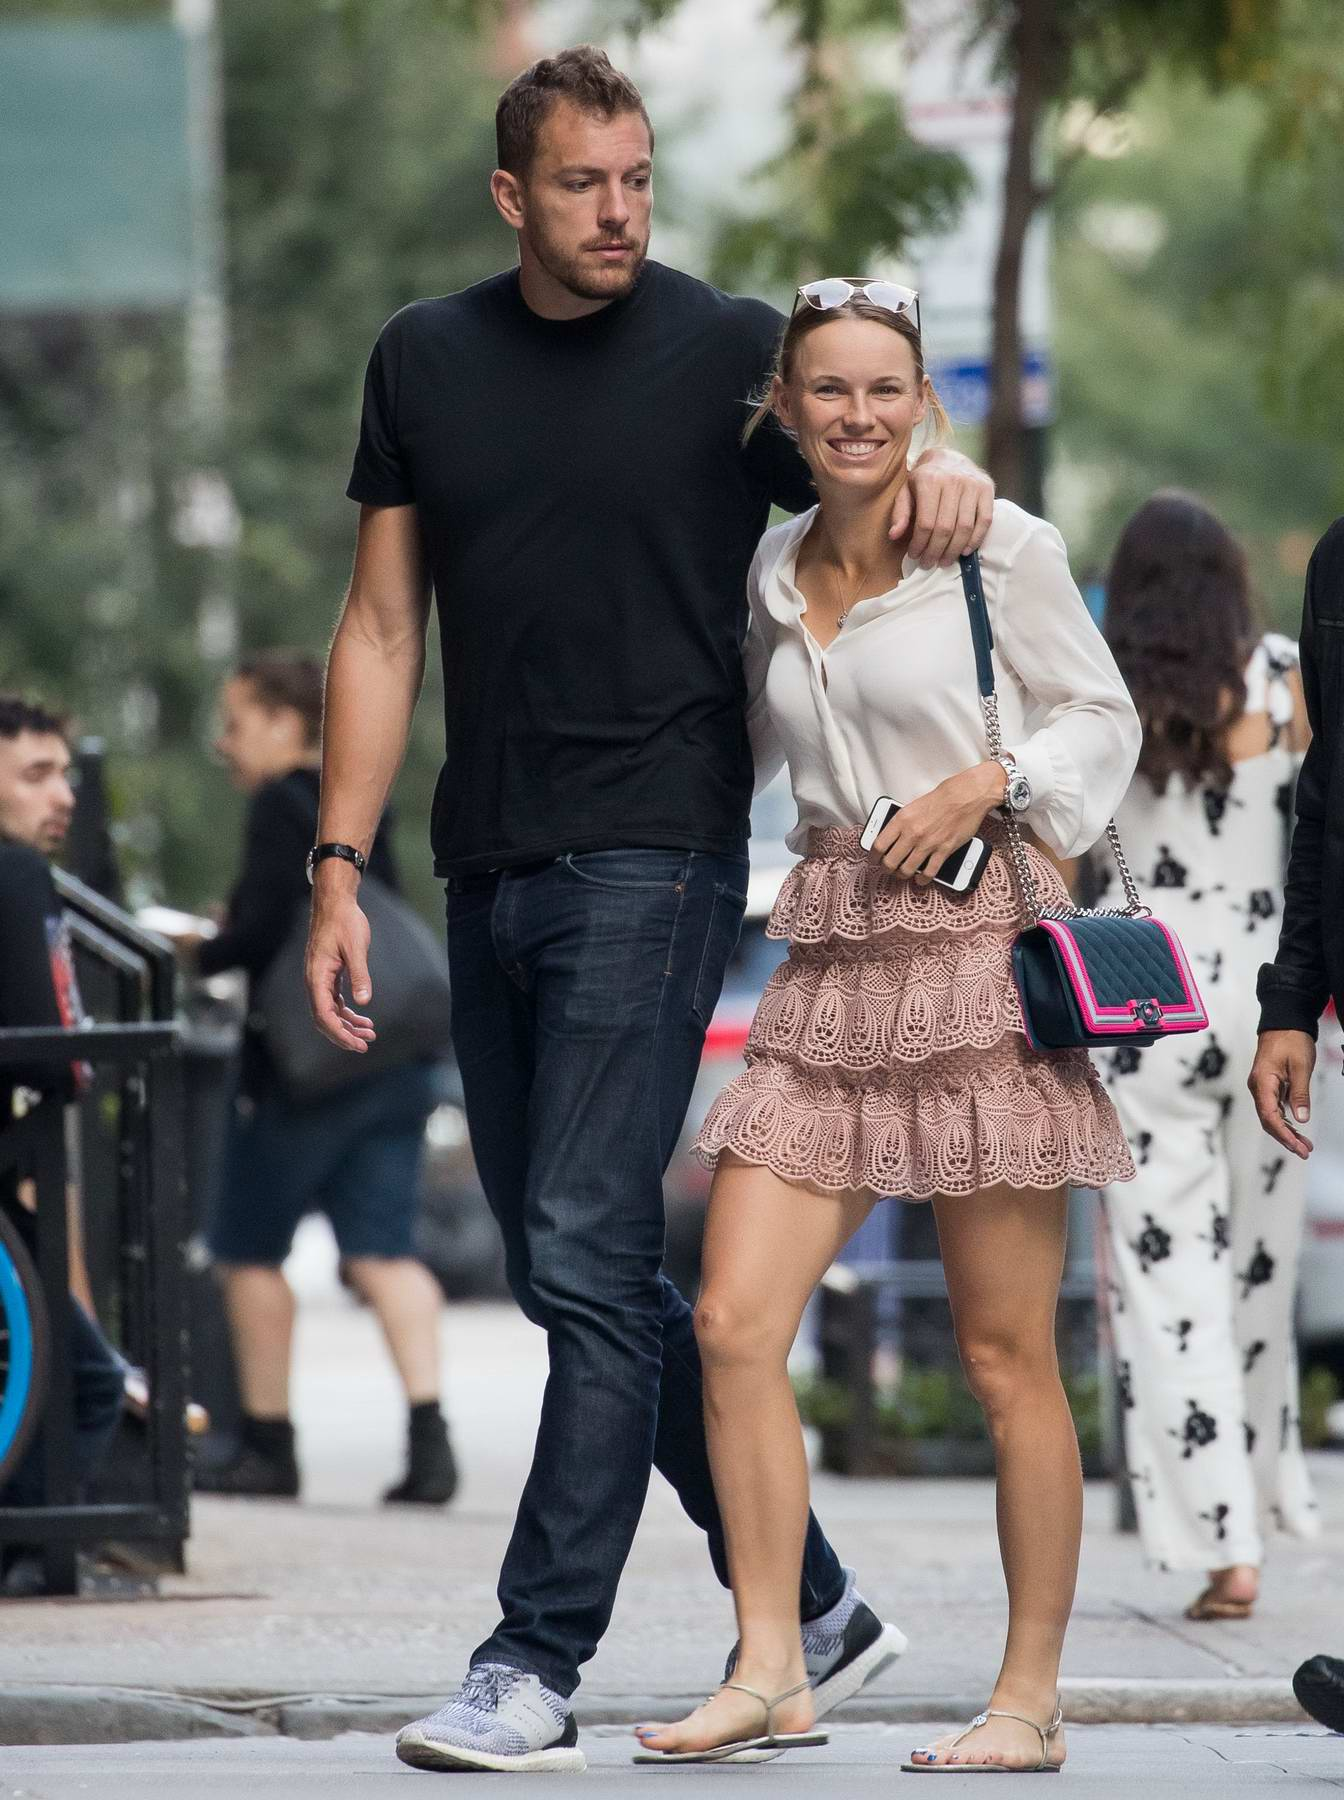 Wozniacki and David Lee spotted with a real estate broker in New